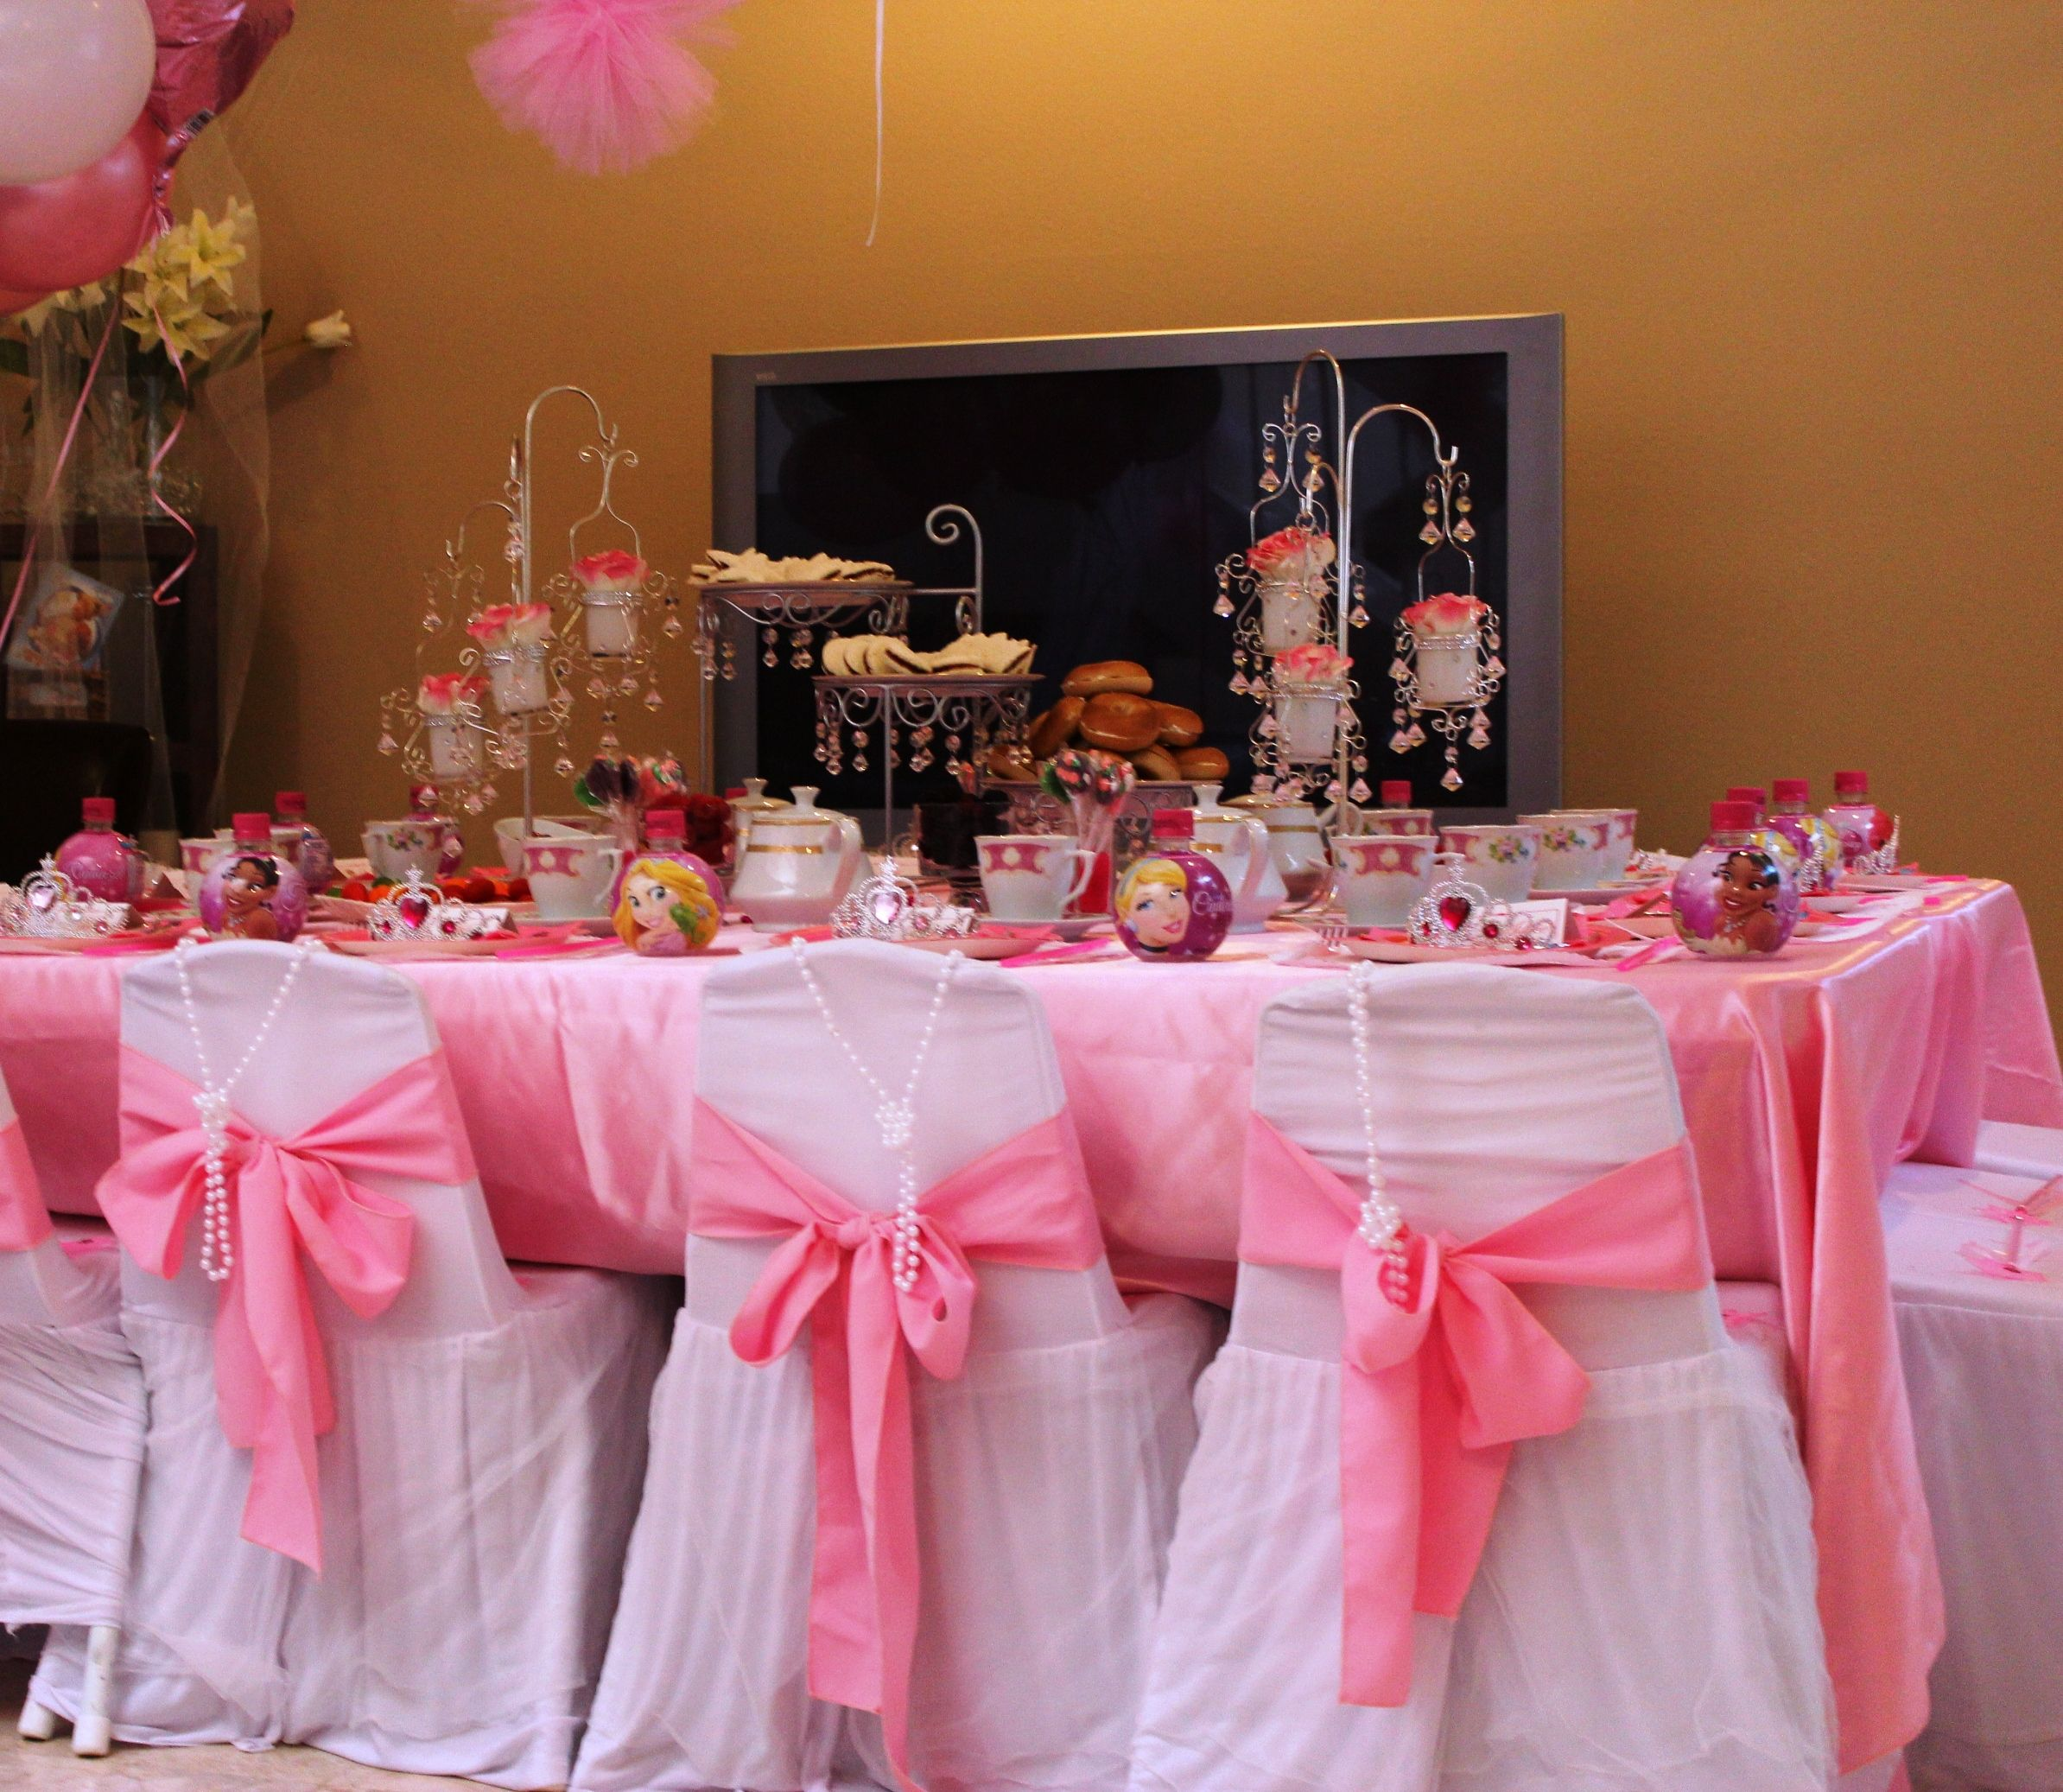 Dinner Party Ideas For Kids Part - 46: Princess Tea Party Ideas, Kid Sized Tables And Chairs With Princess Style  Chair Covers,